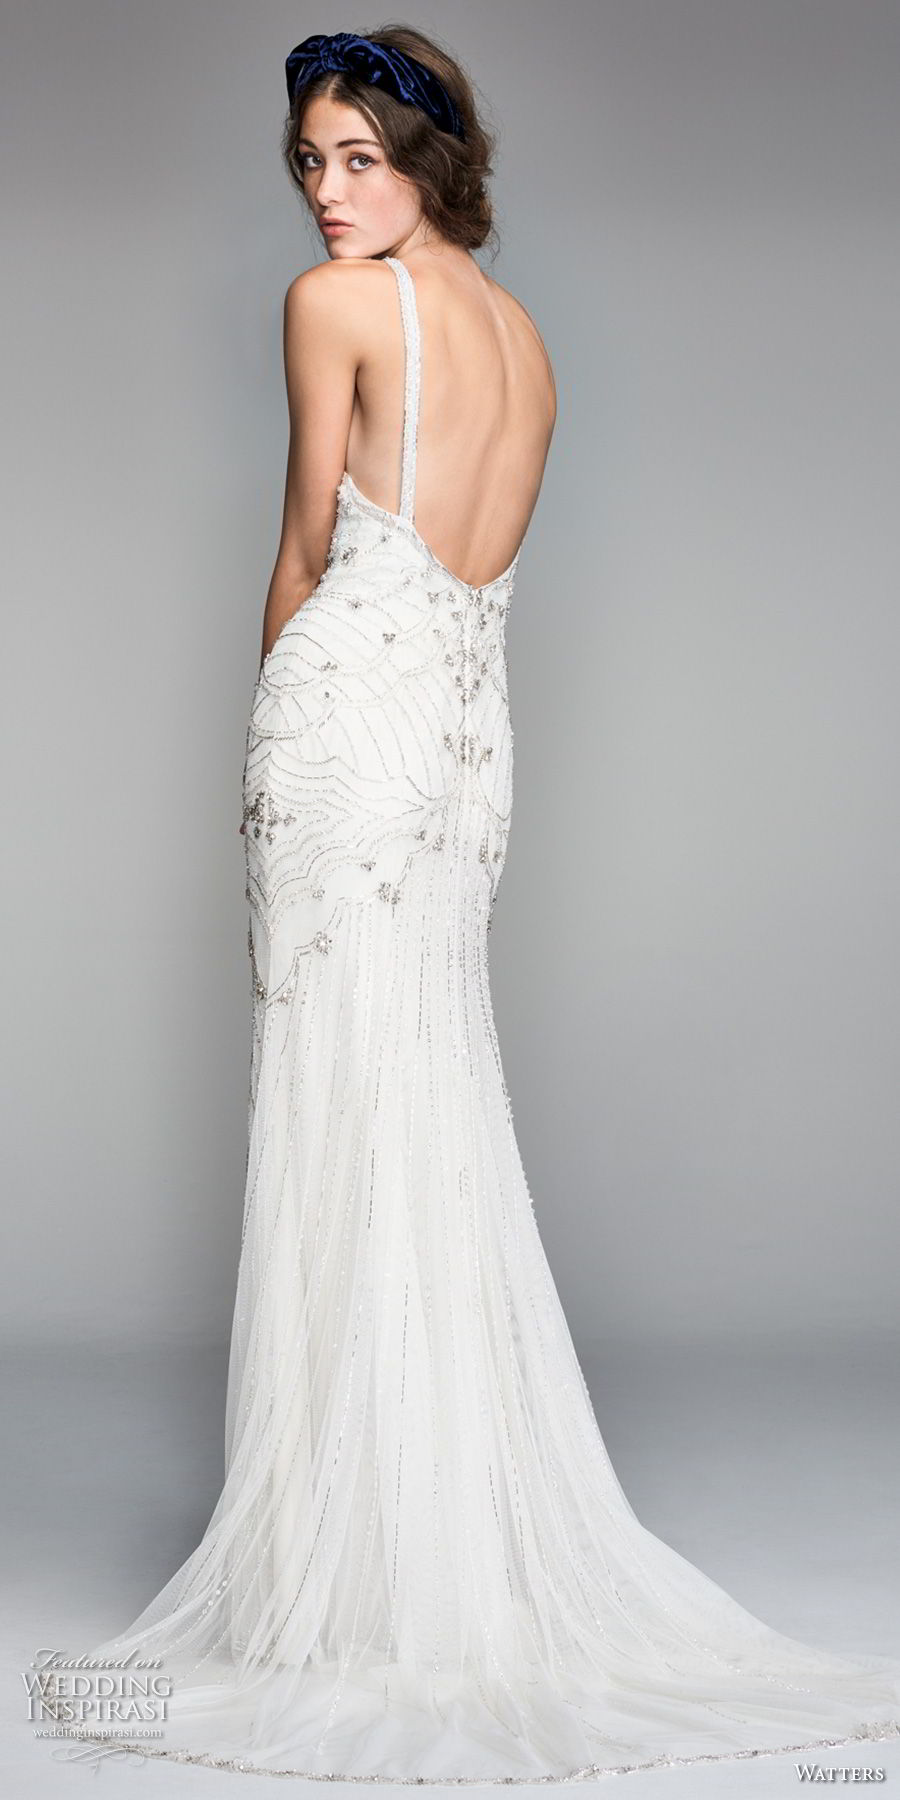 willow by watters spring 2018 sleeveless criss cross halter neckline heavily embellished bodice art deco elegant fit and flare wedding dress open back short train (9) bv